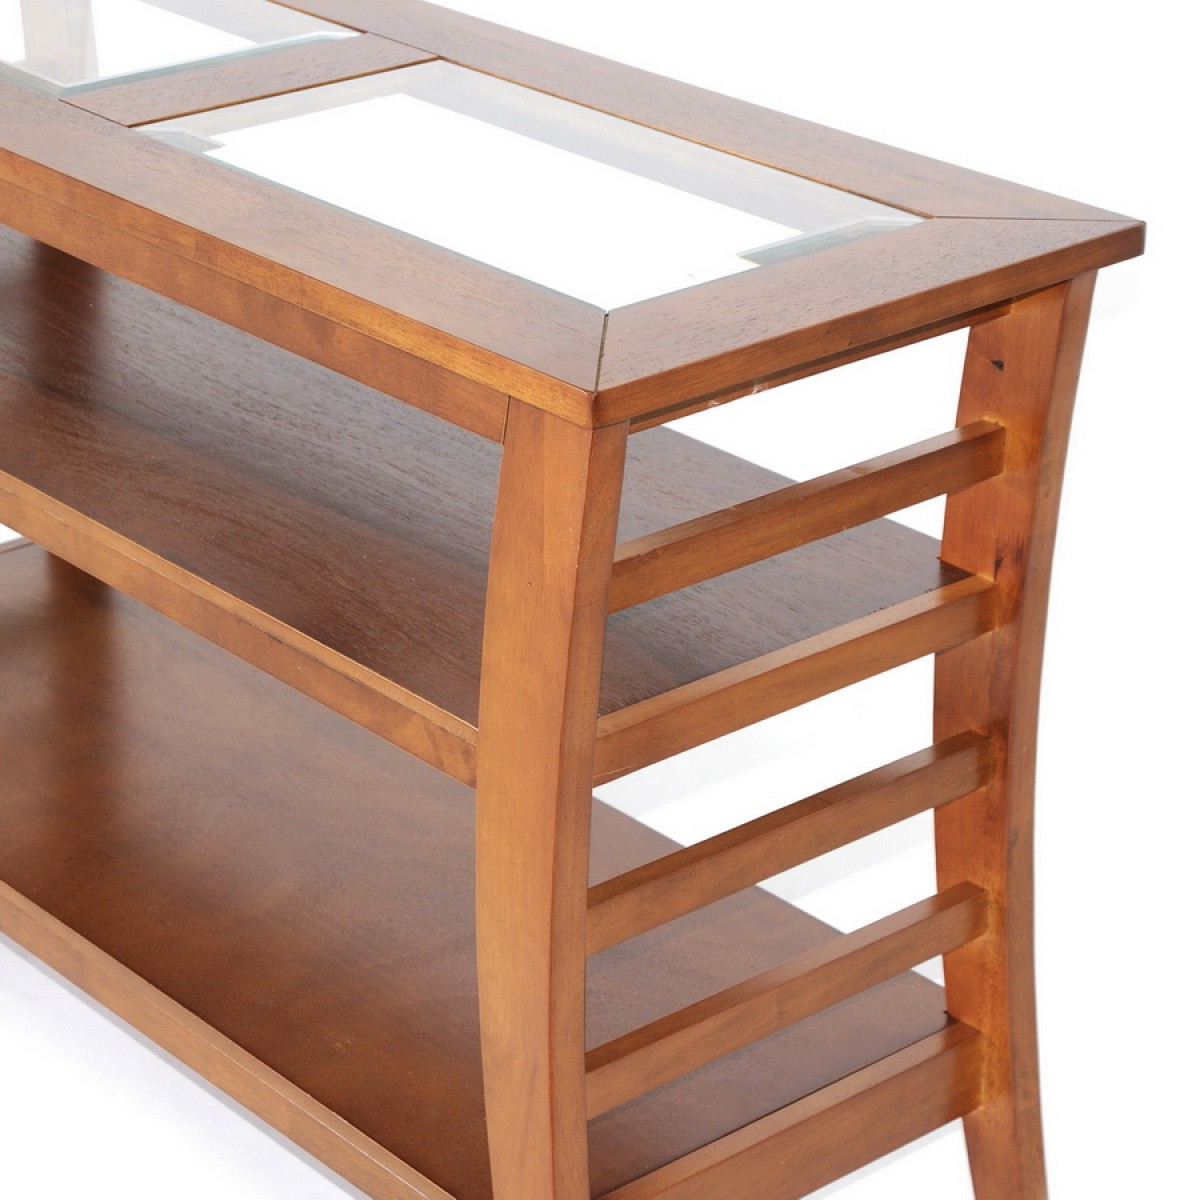 Allison Honey Brown Wood Modern Console Table With Glass Inlay | See Intended For Orange Inlay Console Tables (View 5 of 20)